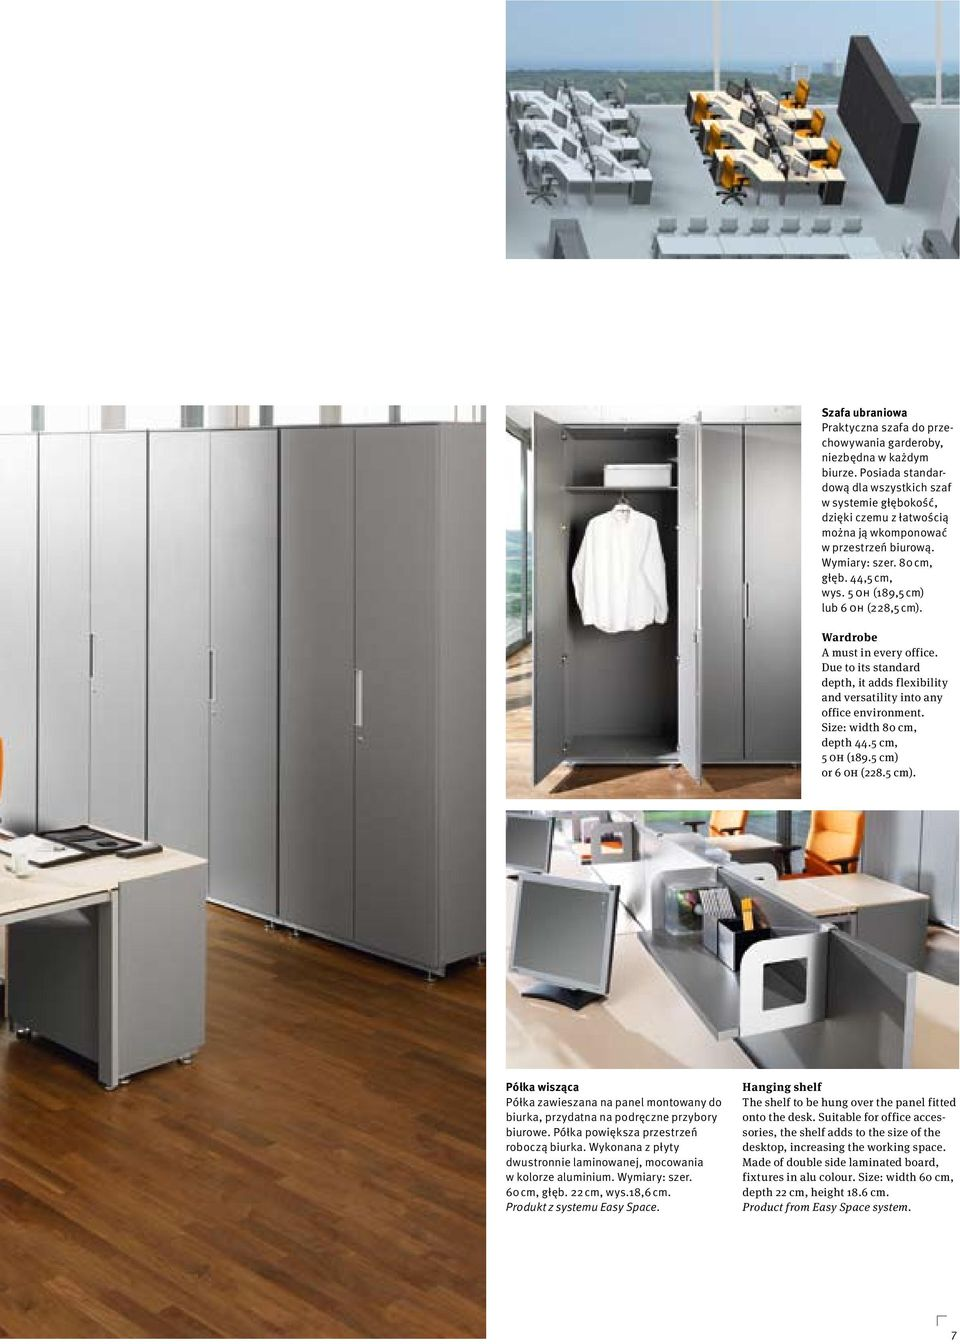 5 OH (189,5 cm) lub 6 OH (228,5 cm). Wardrobe A must in every office. Due to its standard depth, it adds flexibility and versatility into any office environment. Size: width 80 cm, depth 44.